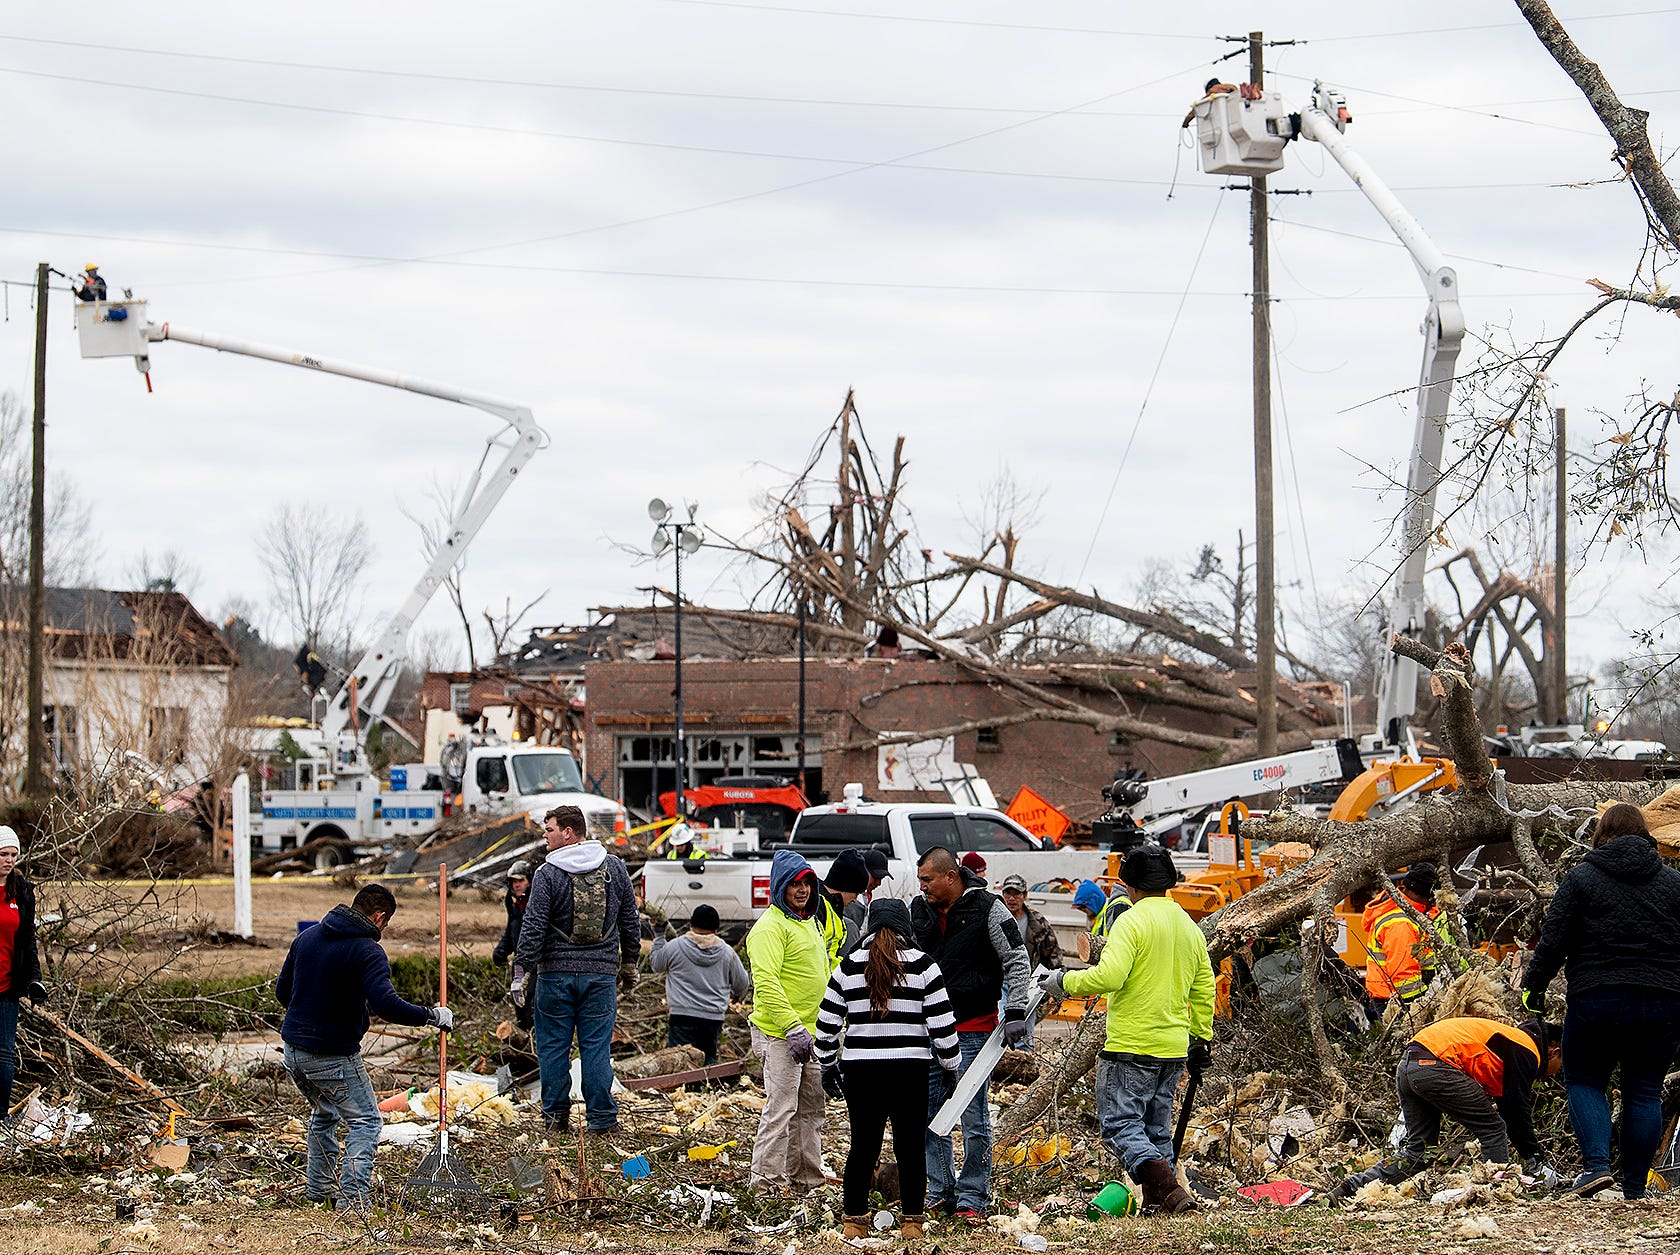 Young volunteers clean up debris on Sunday January 20, 2019, after a tornado hit Wetumpka, Ala., on Saturday afternoon.